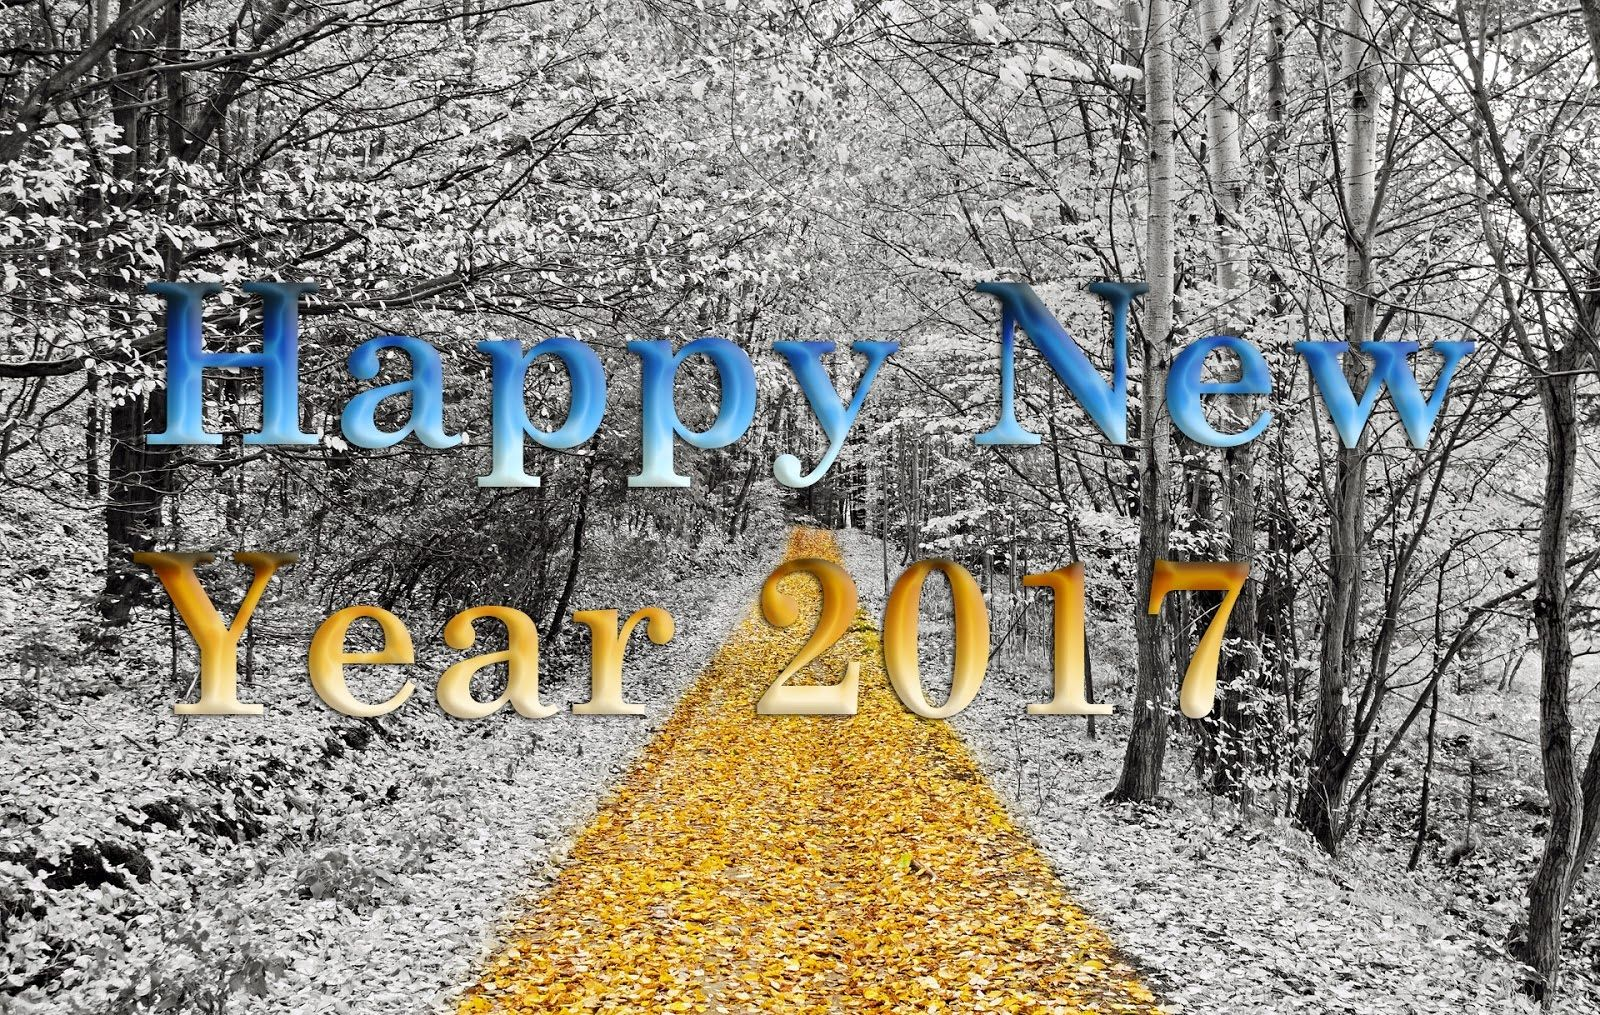 Wallpaper download new 2017 - Wallpaper Download 2017 Happynewyear2017 Celebrate New Year 2017 With Happy New Year Wallpapers Http